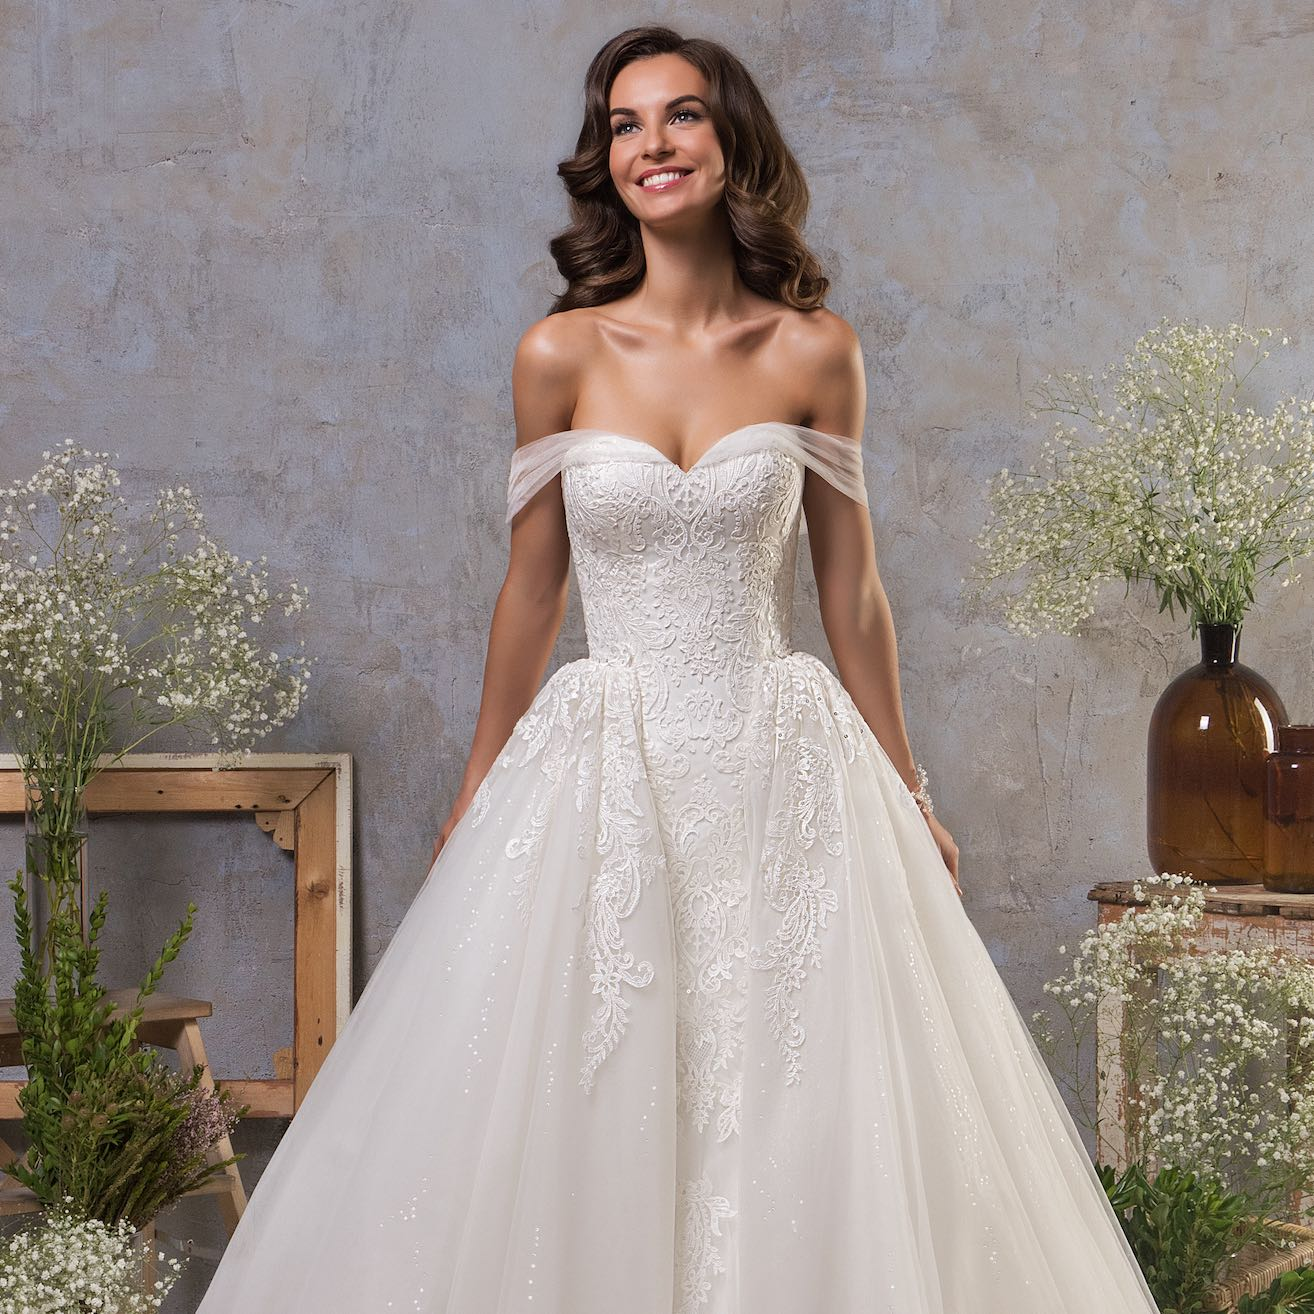 amelia sposa fall 2018 wedding dresses belle the magazine With fall 2018 wedding dresses